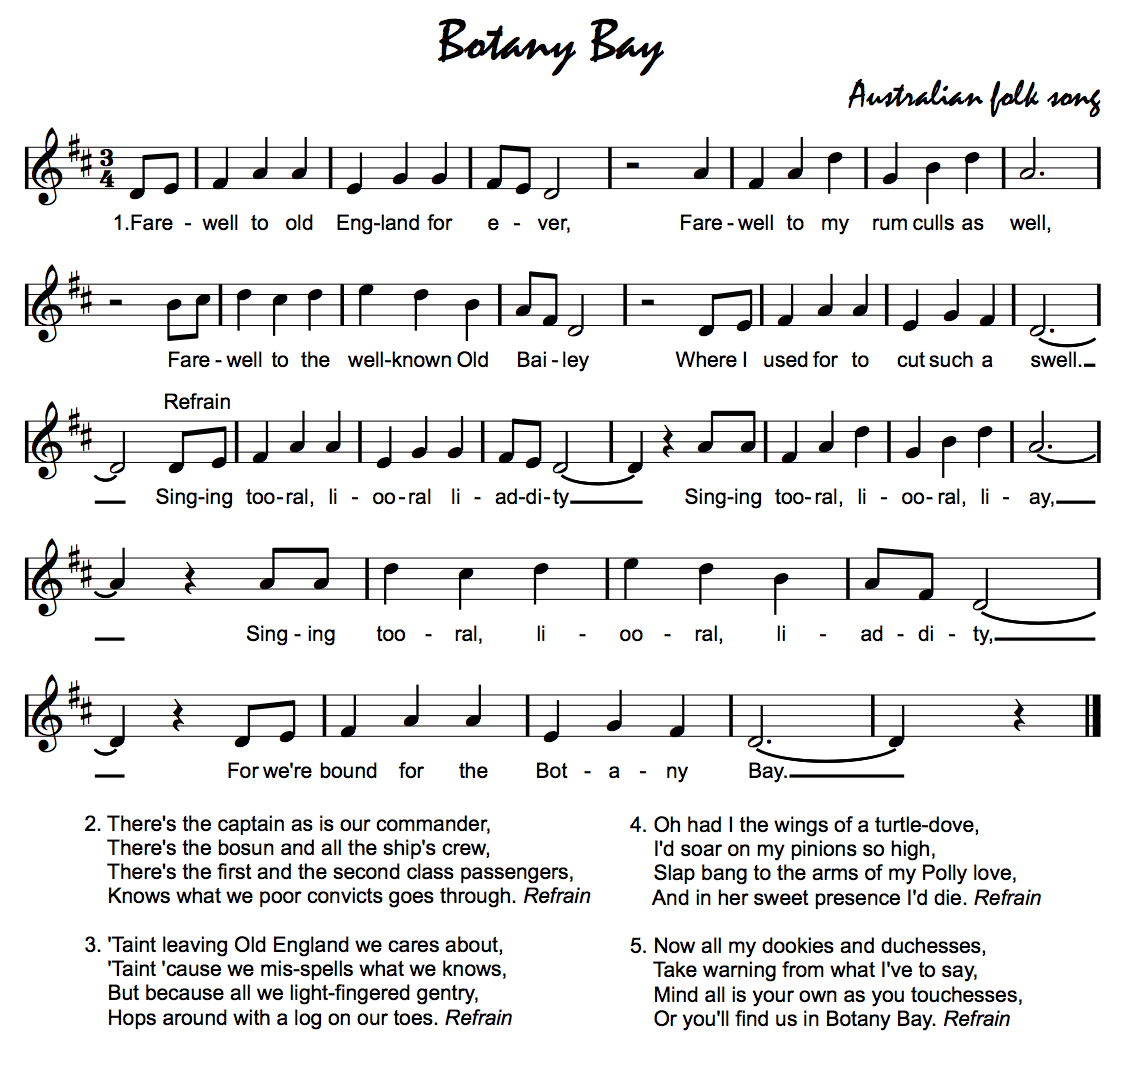 worksheet Music History Worksheets beths music notes over 30 multicultural songs free botany bay australia